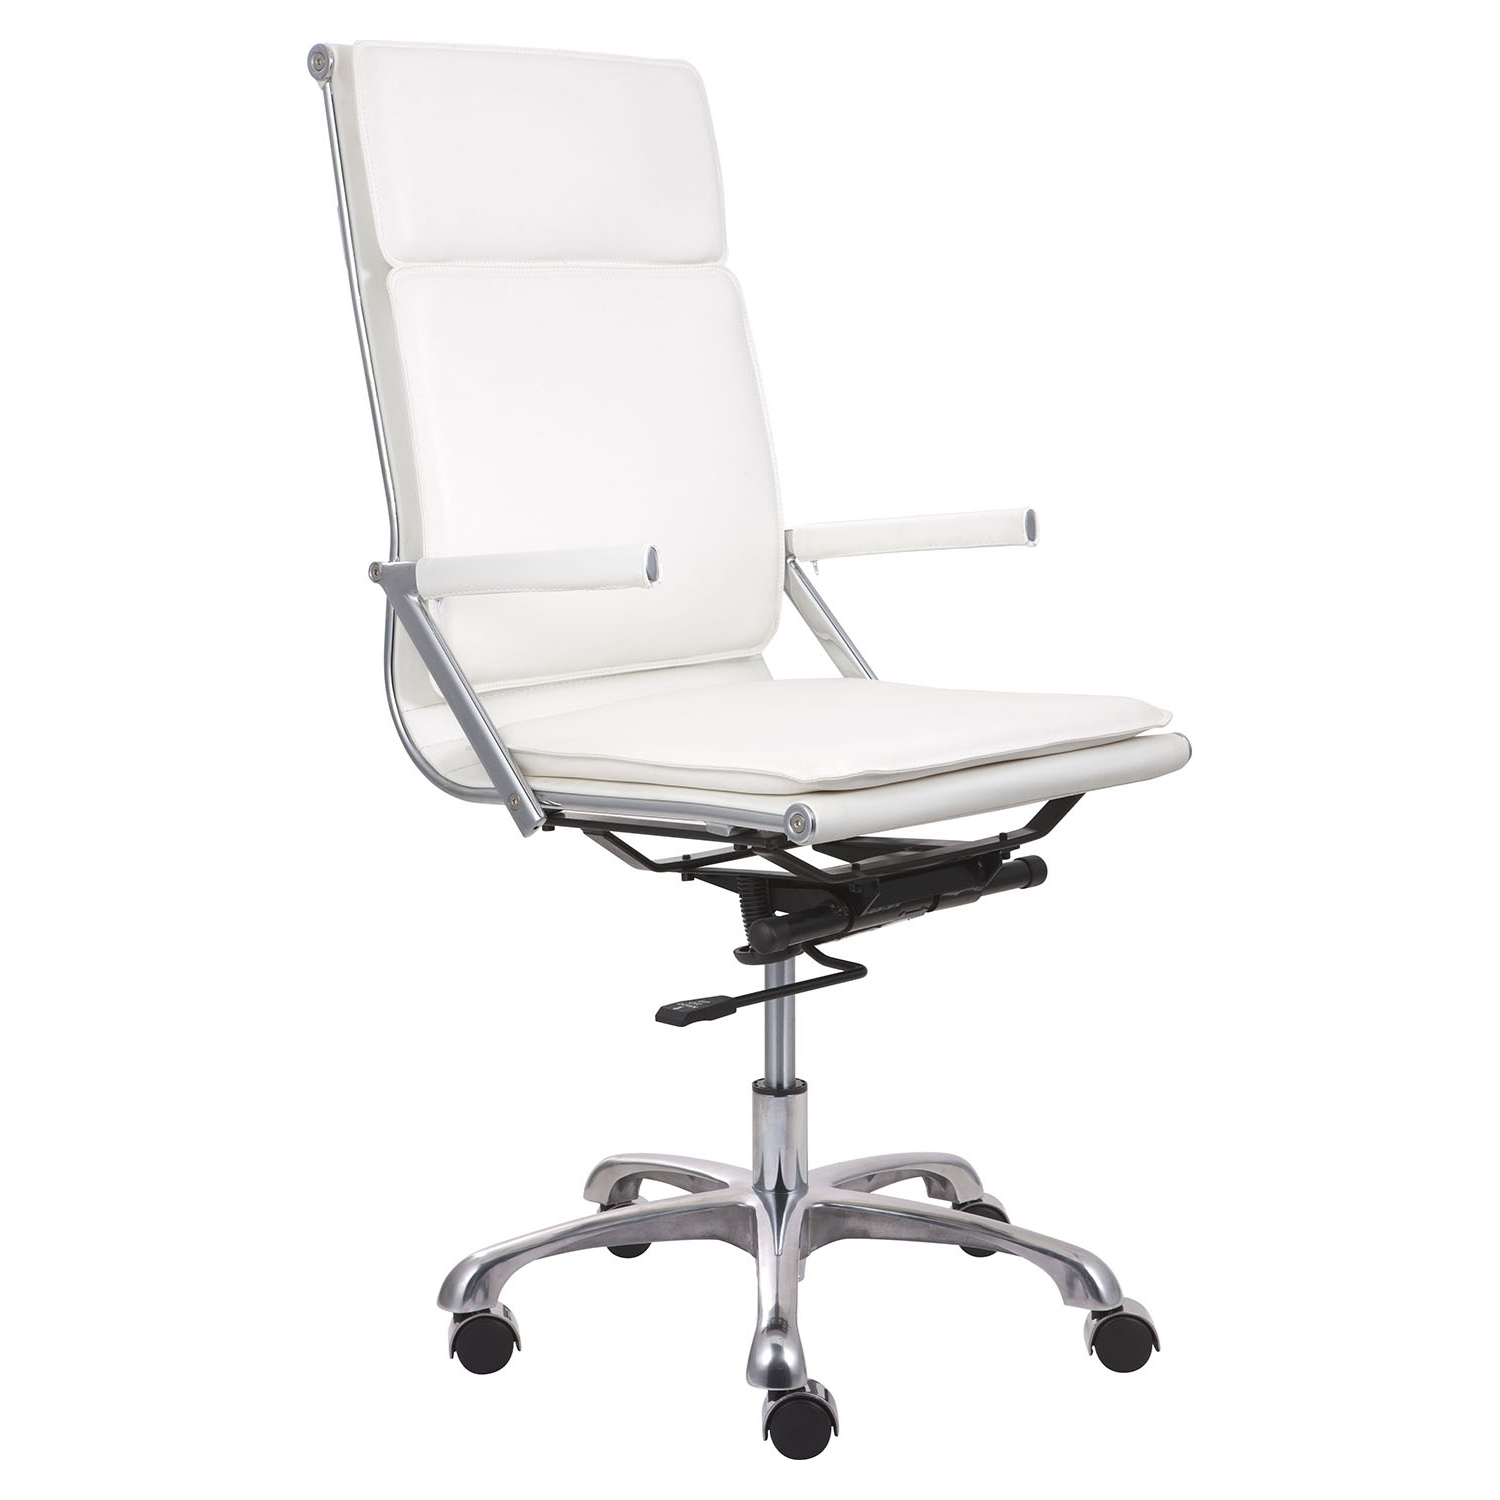 Lider Plus High Back Office Chair - White